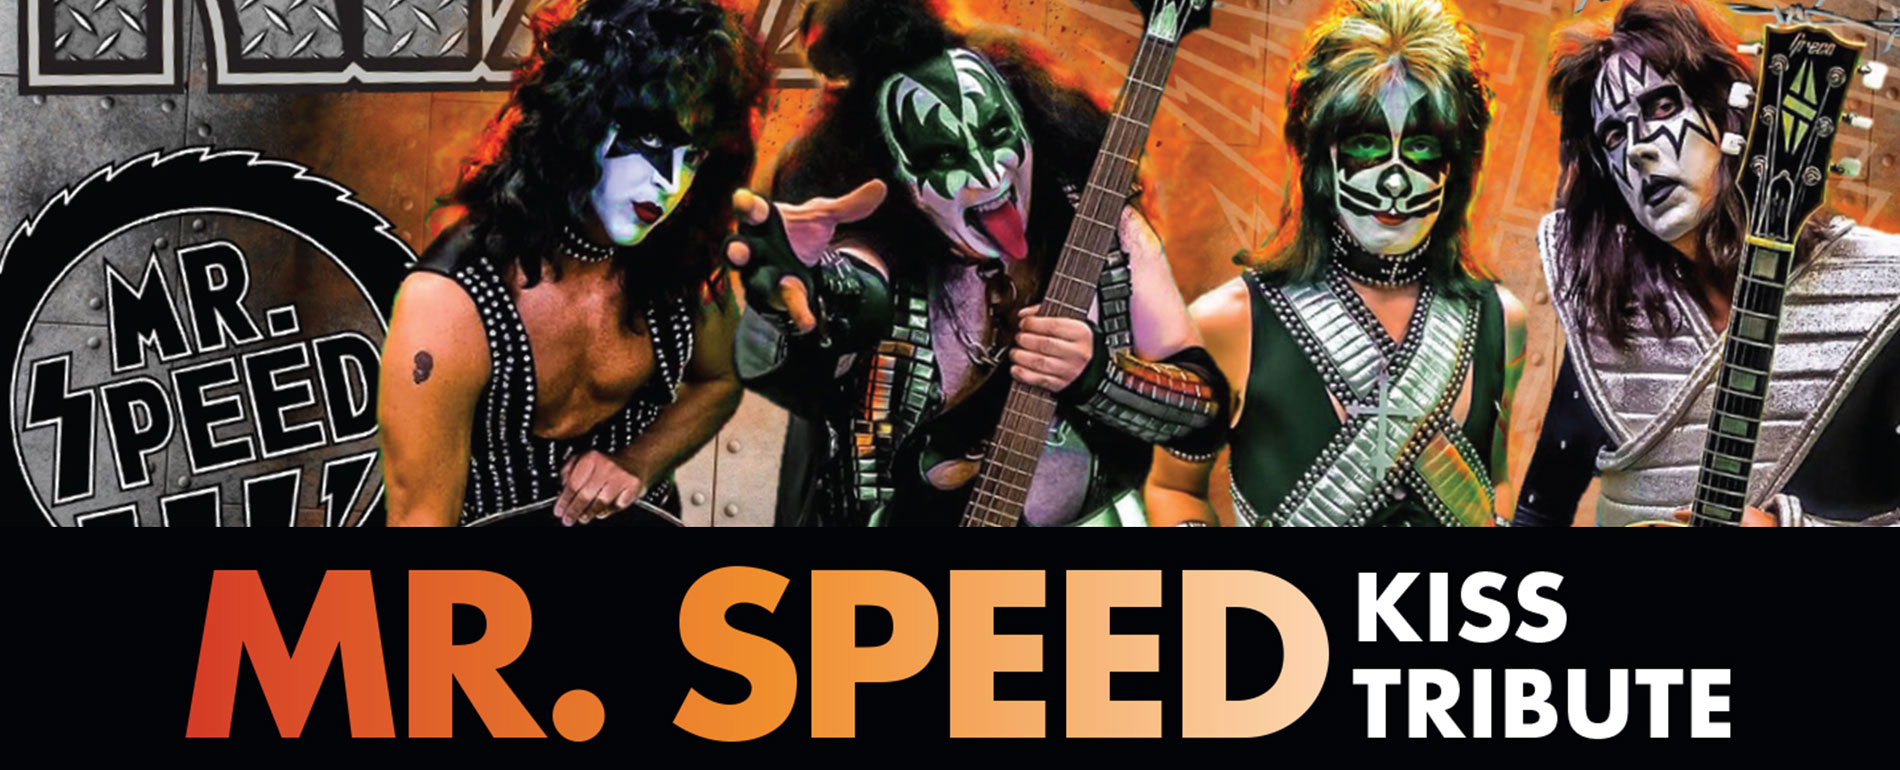 Pocono Concert - Mr. Speed Kiss tribute